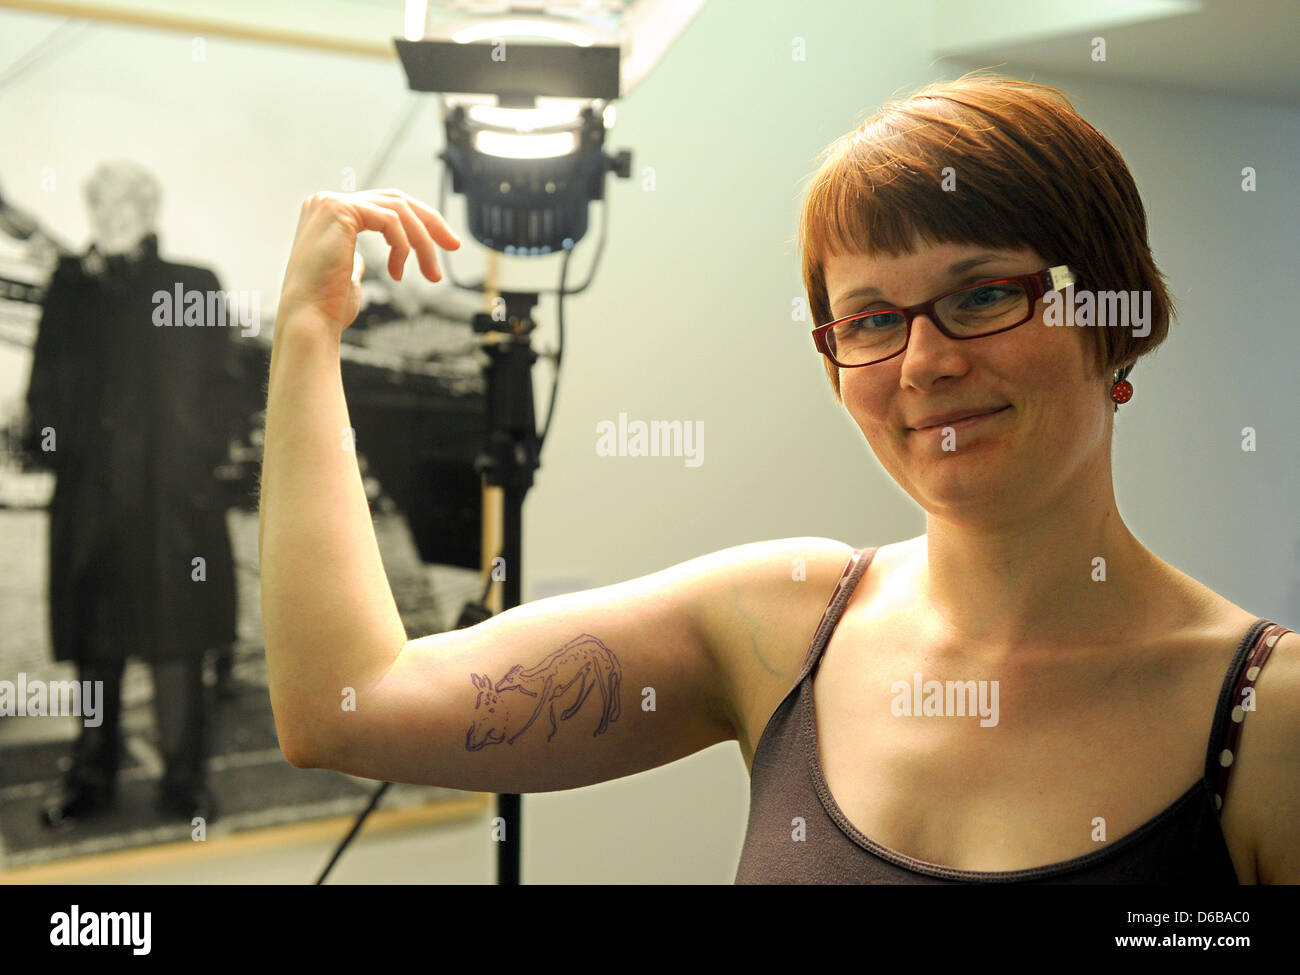 KatrinToelle, employee of the Kusthalle Emden, shows the tattoo design on her right arm in Emden,Germany, 24 August Stock Photo